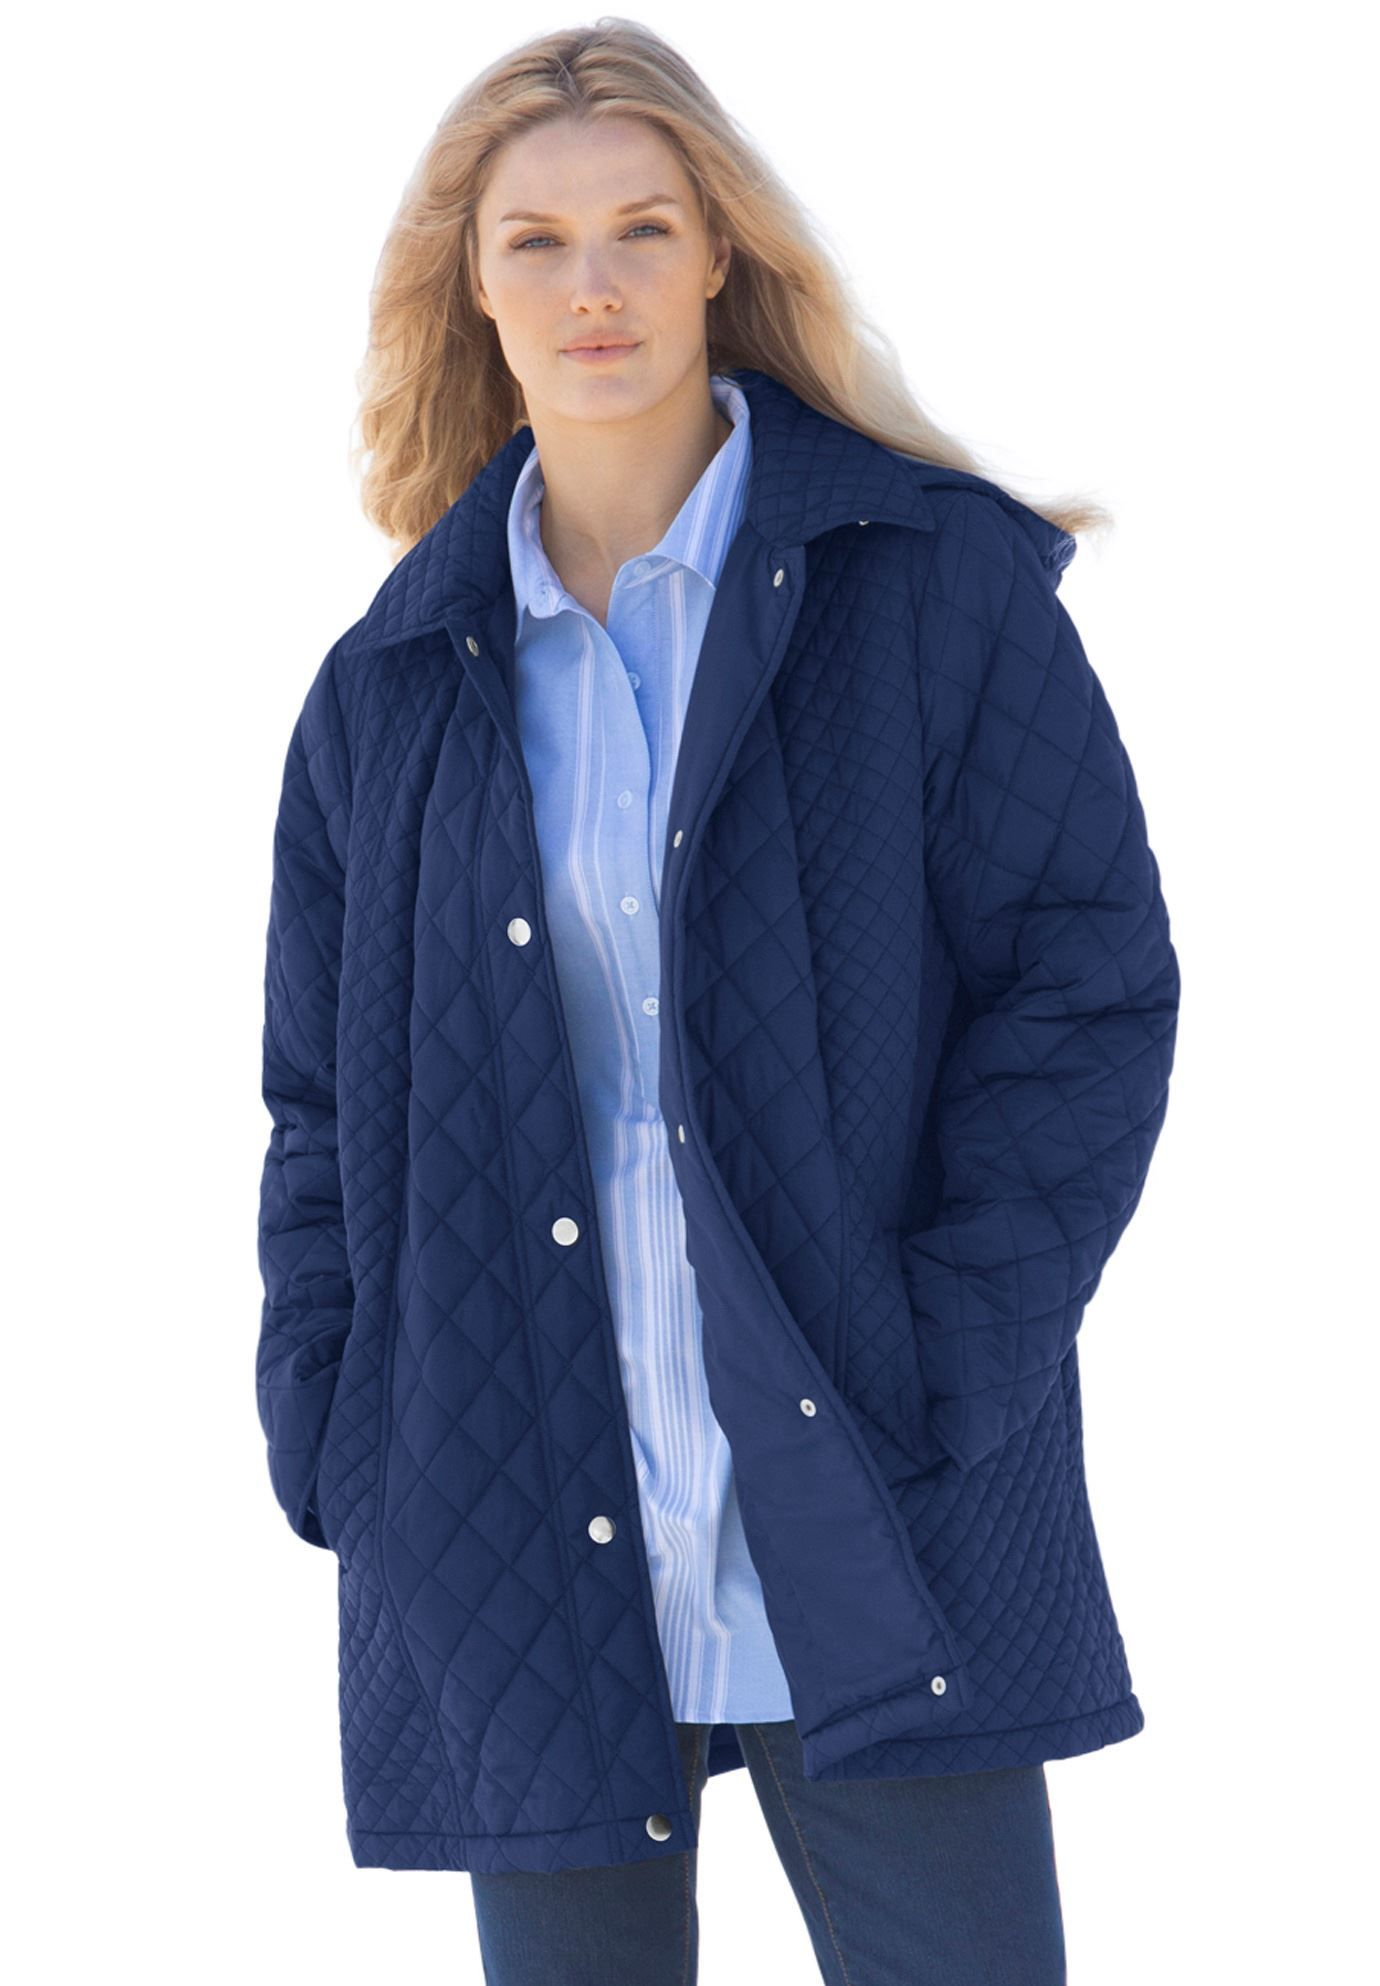 Quilted jacket, hooded, with slight A-line shape